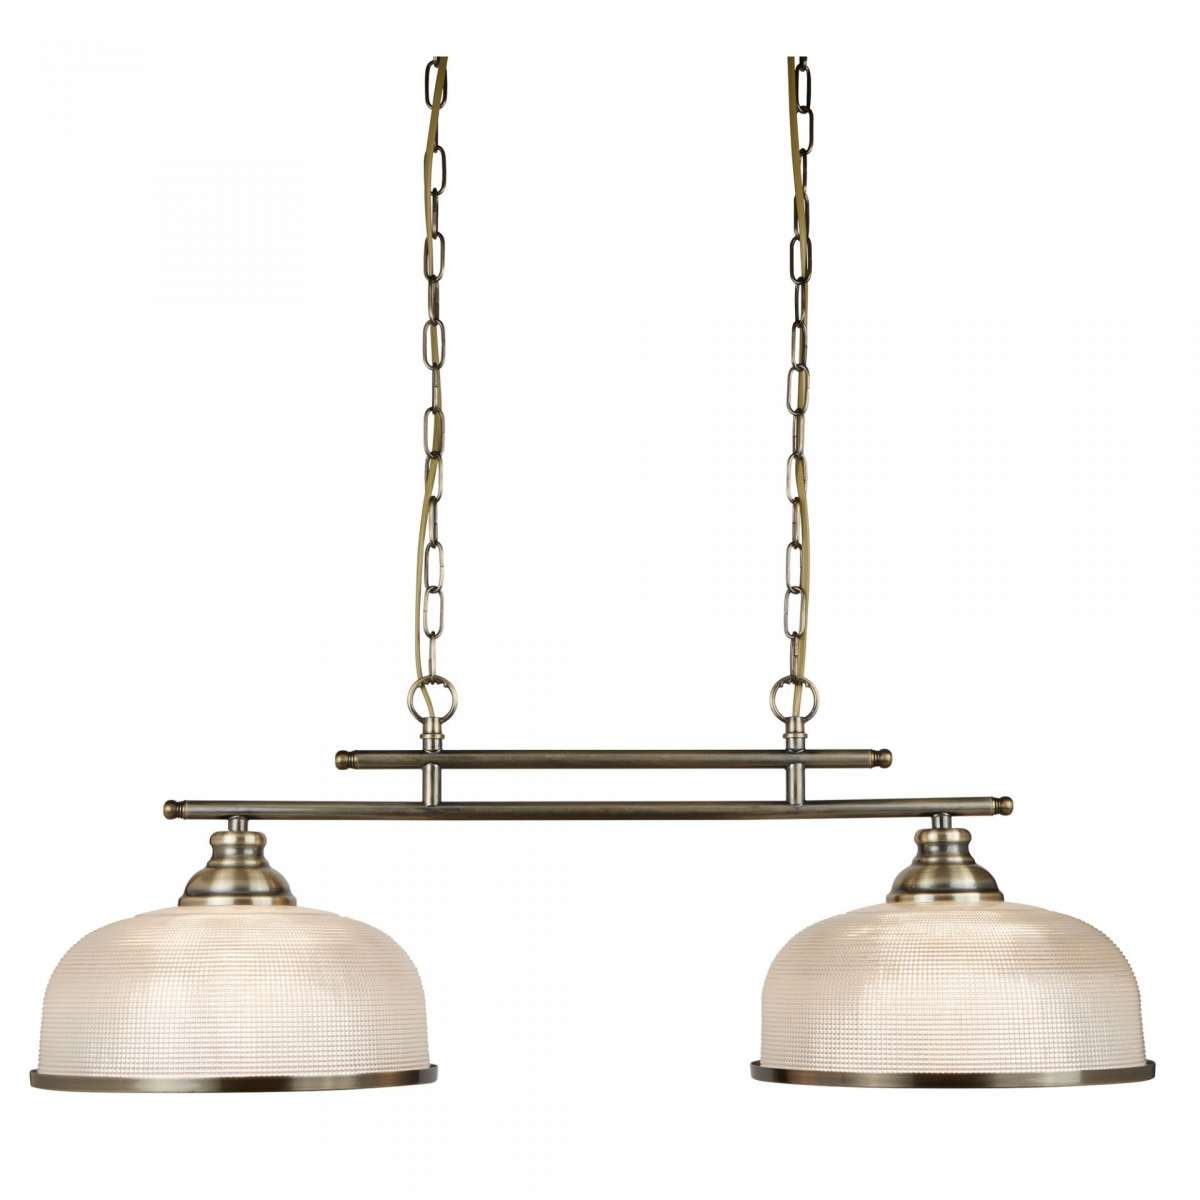 Bistro - 2 Light Ceiling Bar, Antique Brass, Halophane Glass